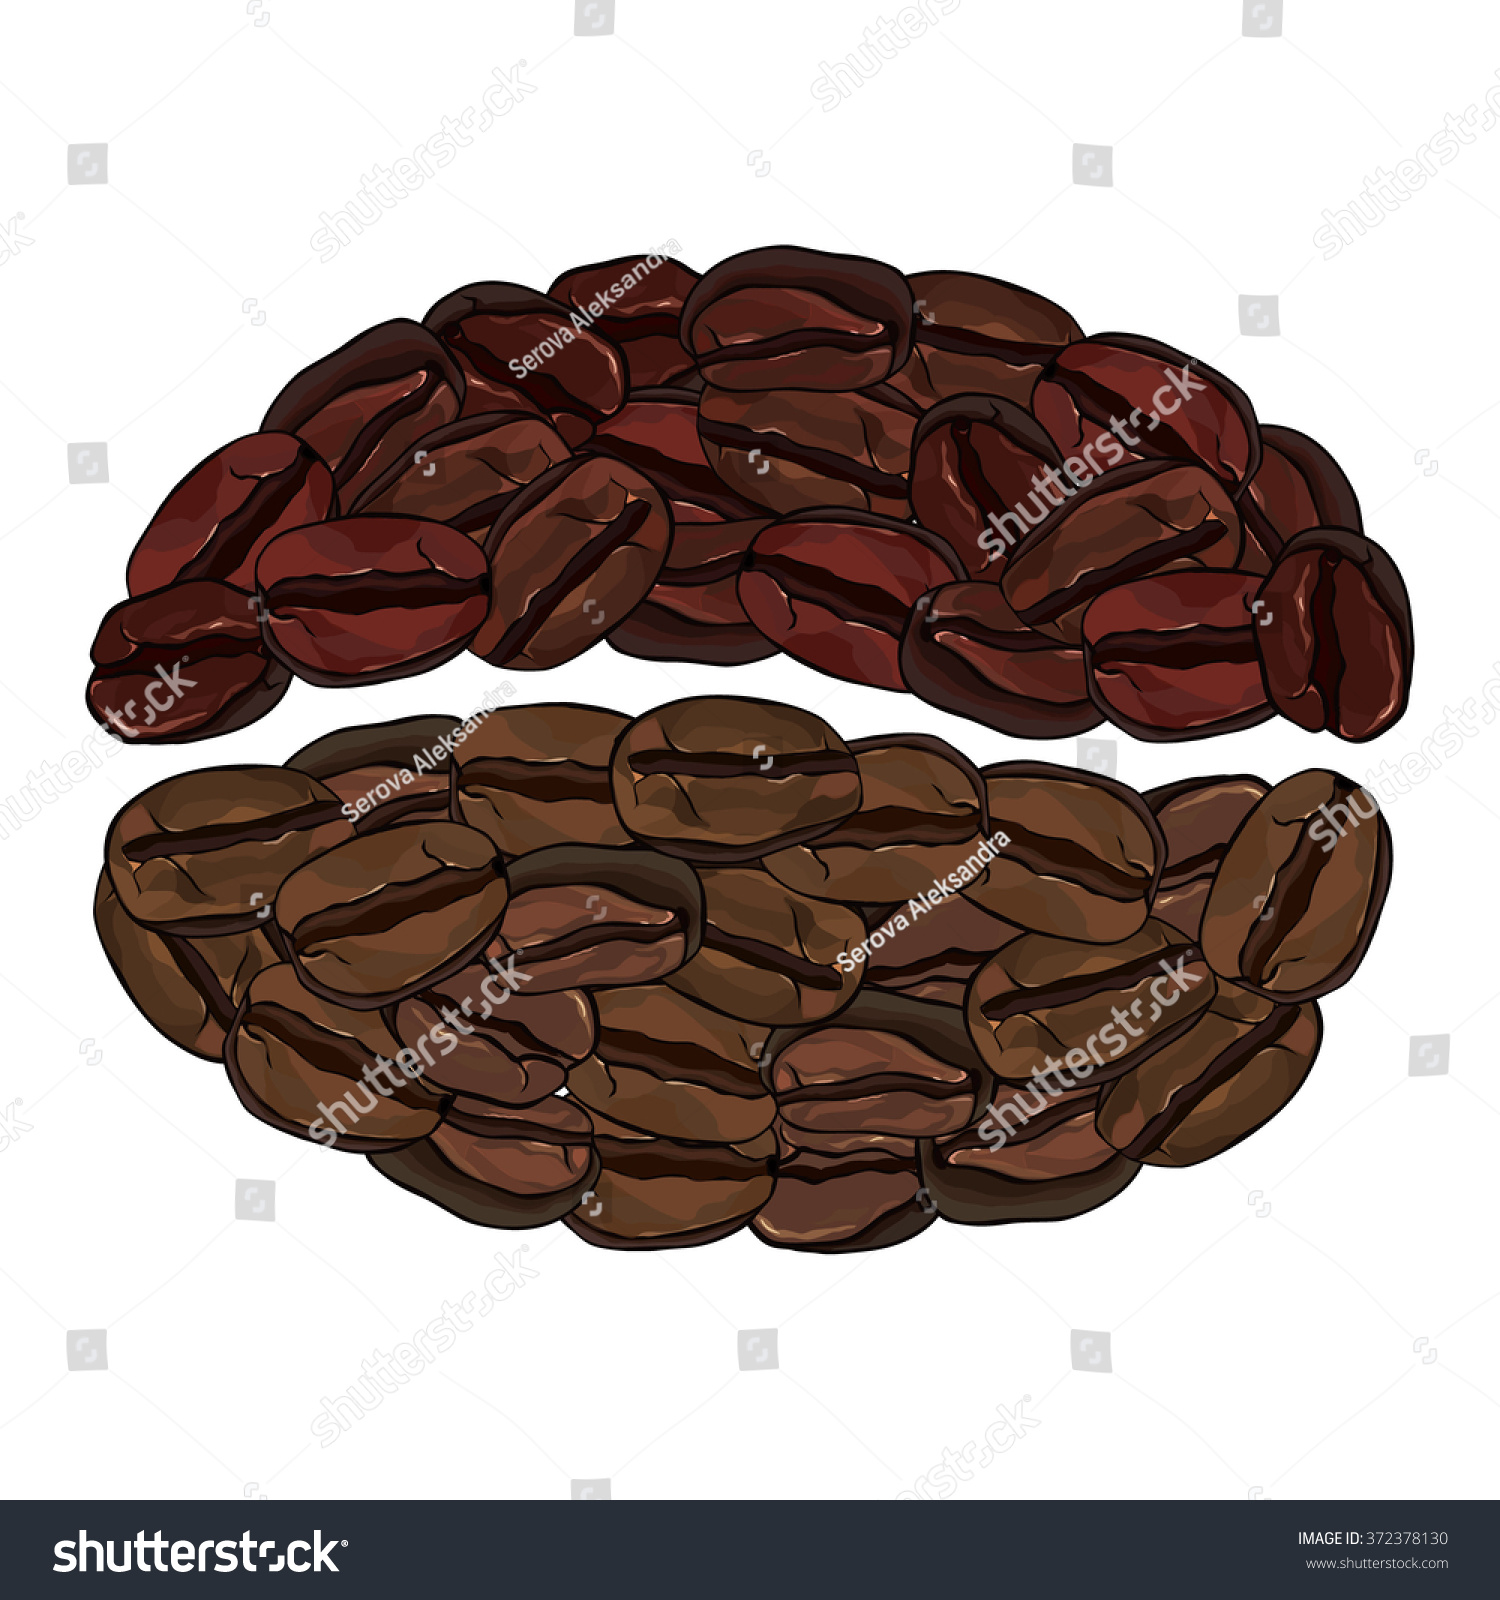 Coffee Bean Stock Vector 372378130 - Shutterstock